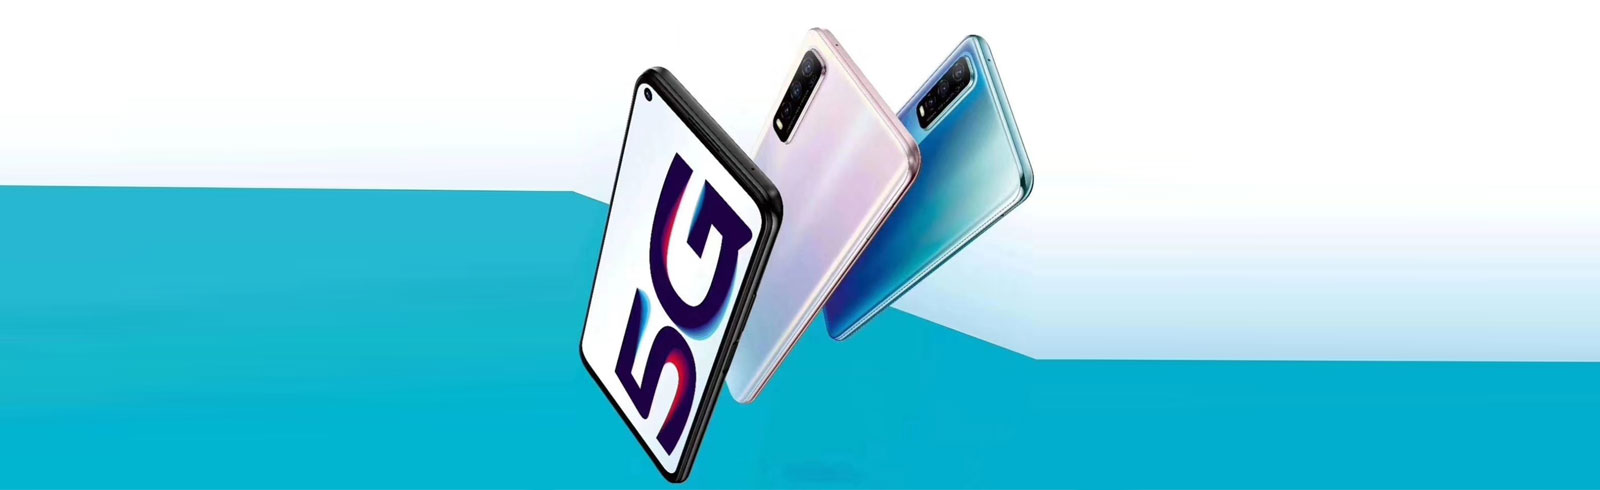 The Vivo Y70s 5G will be based on Samsung's Exynos 880 chipset